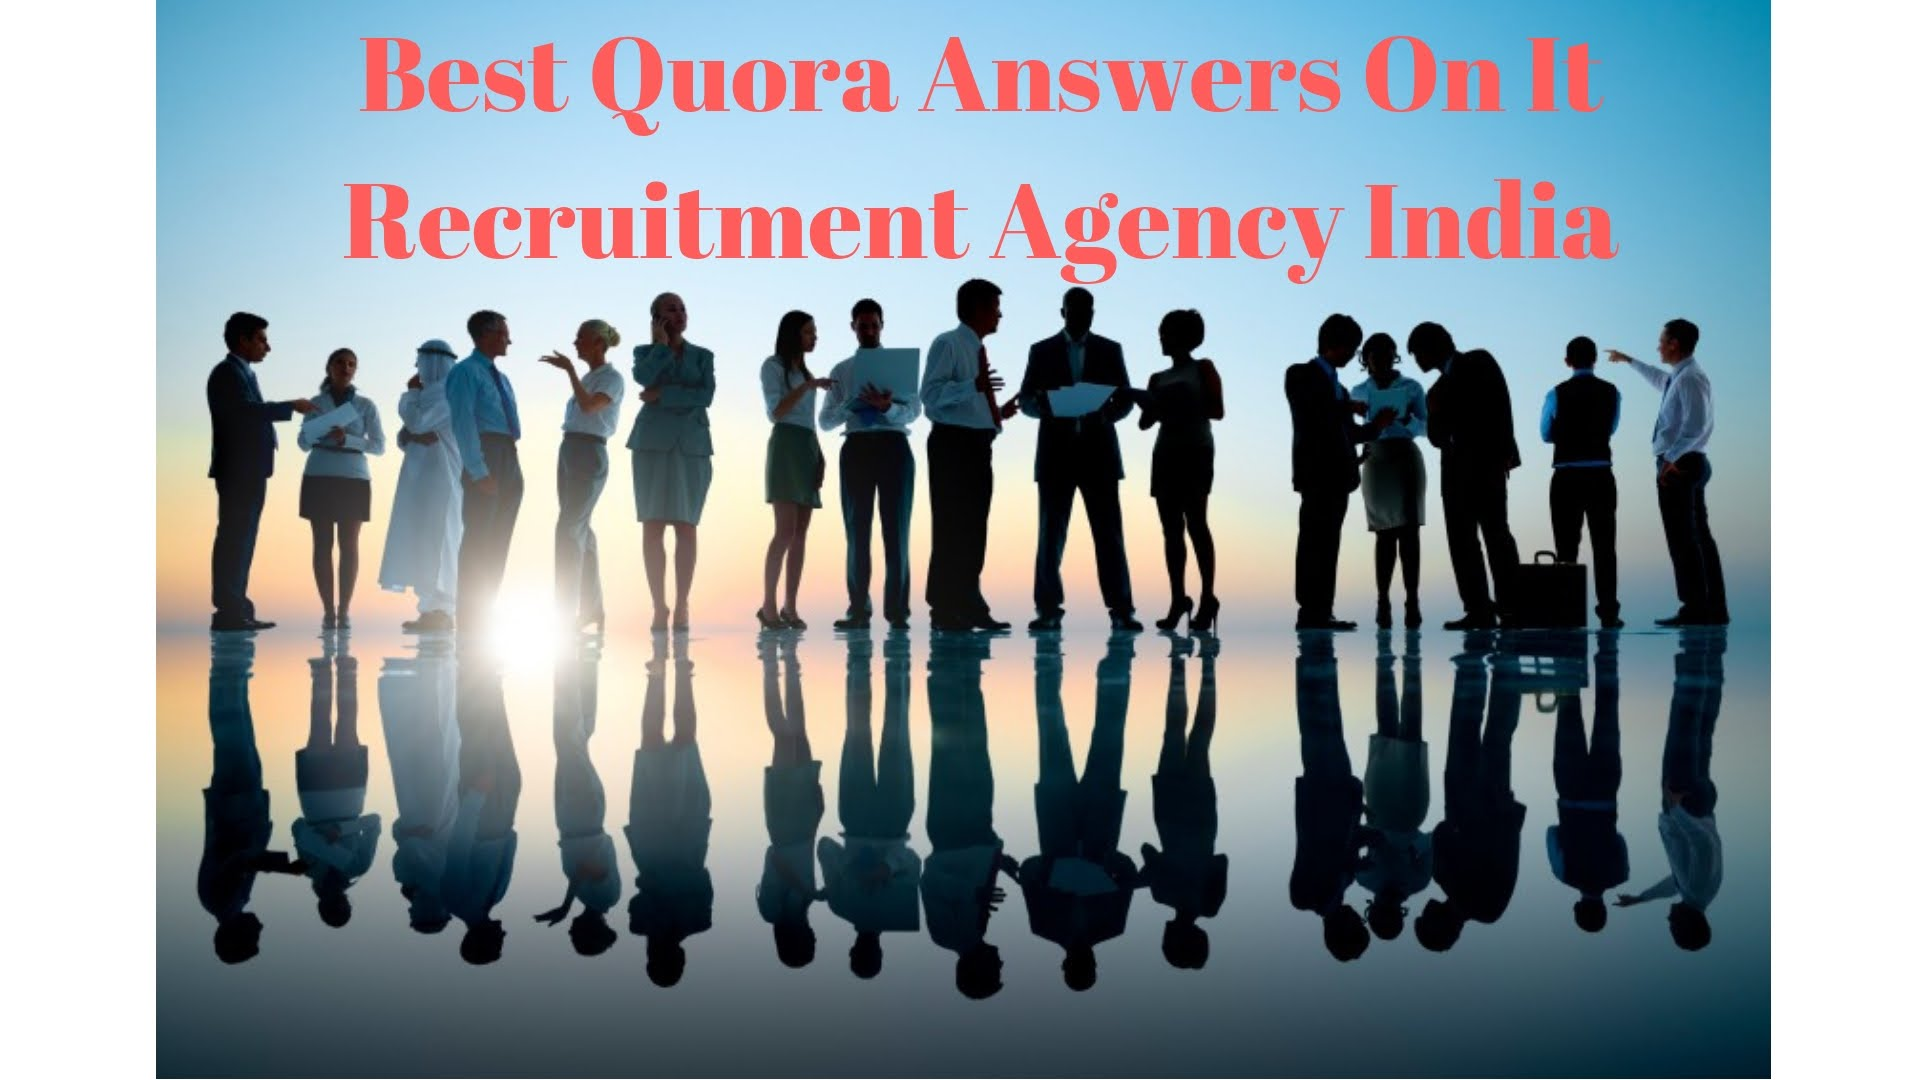 Best Quora Answers On Executive Search Services India Alliance Virtual Assistant